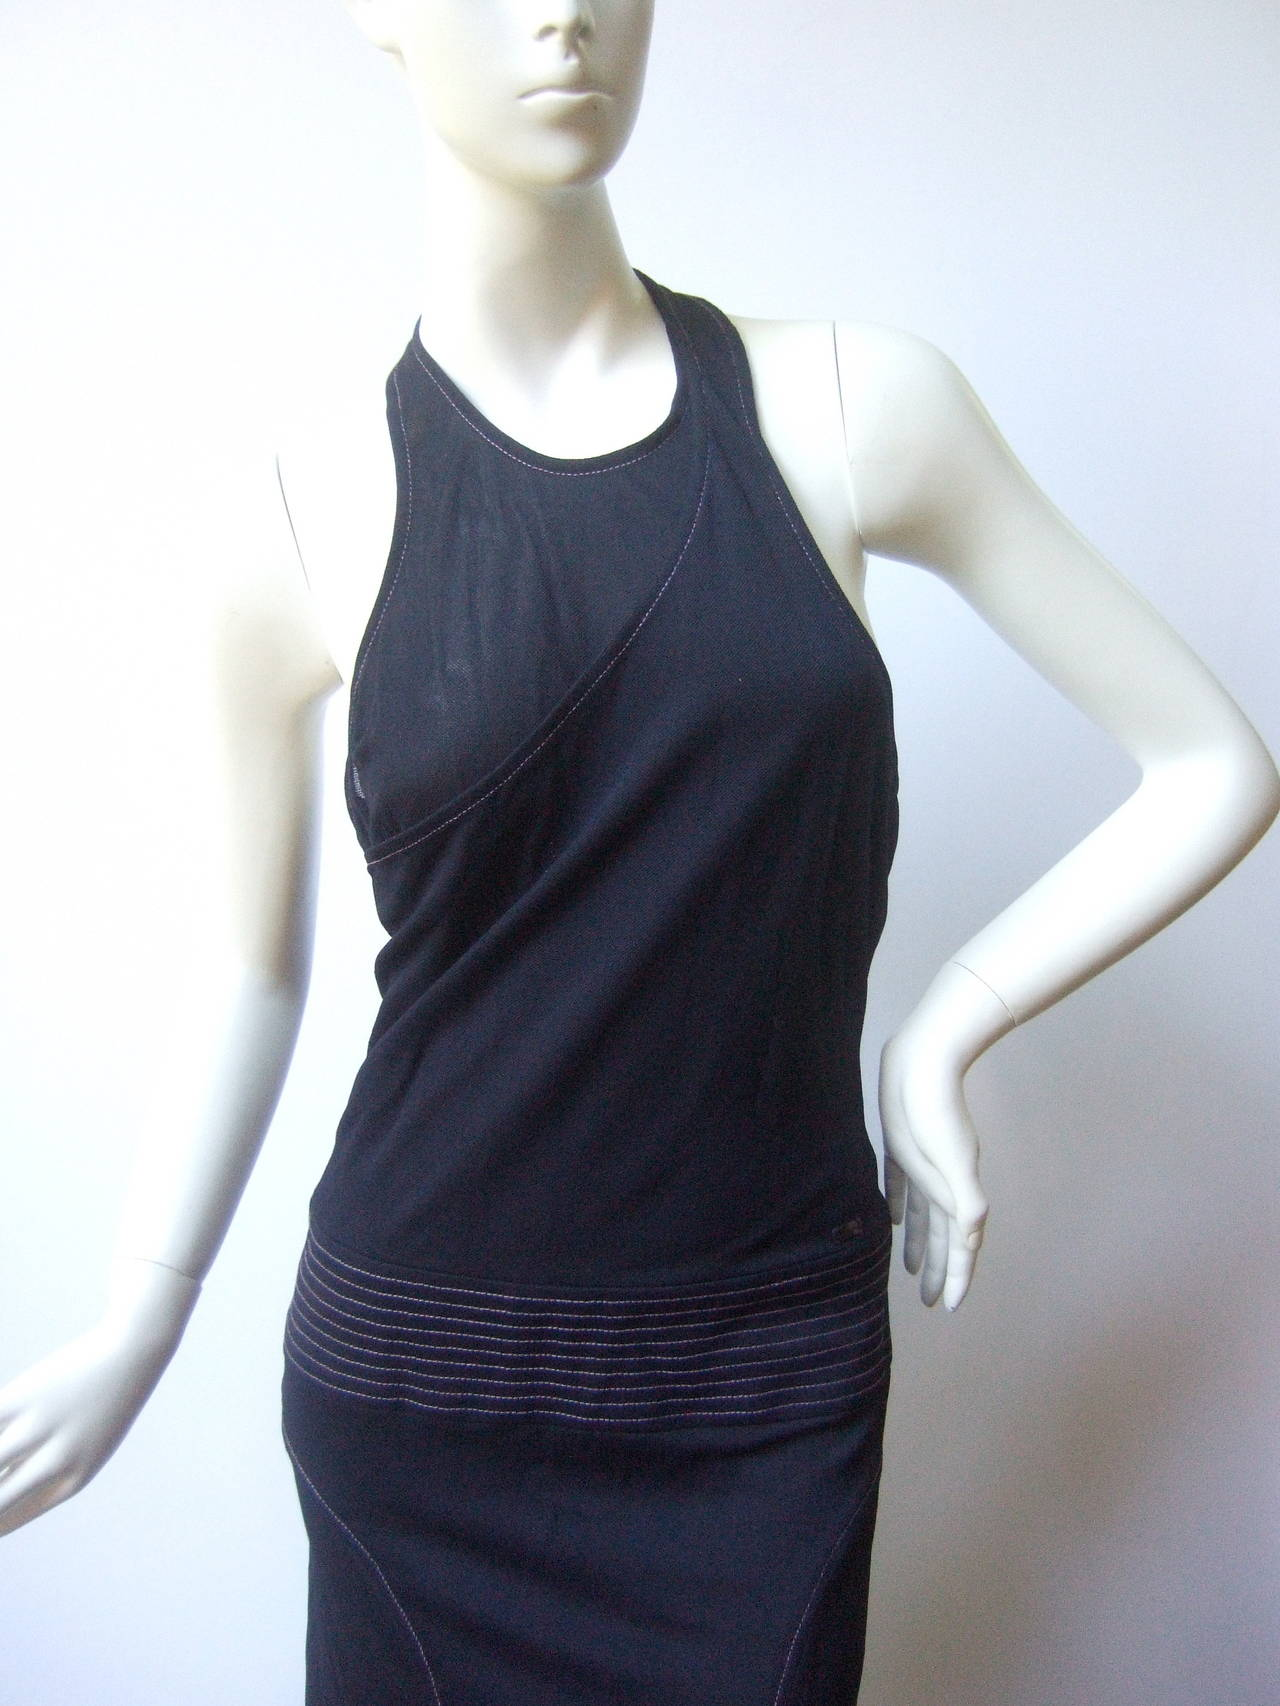 Chanel Sexy midnight blue clingy jersey dress Size 38 The chic dress is designed with a unique silhouette, the top halter section is designed in two distinct fabric panels. One panel covers overlaps the other & the exposed backless design creates a